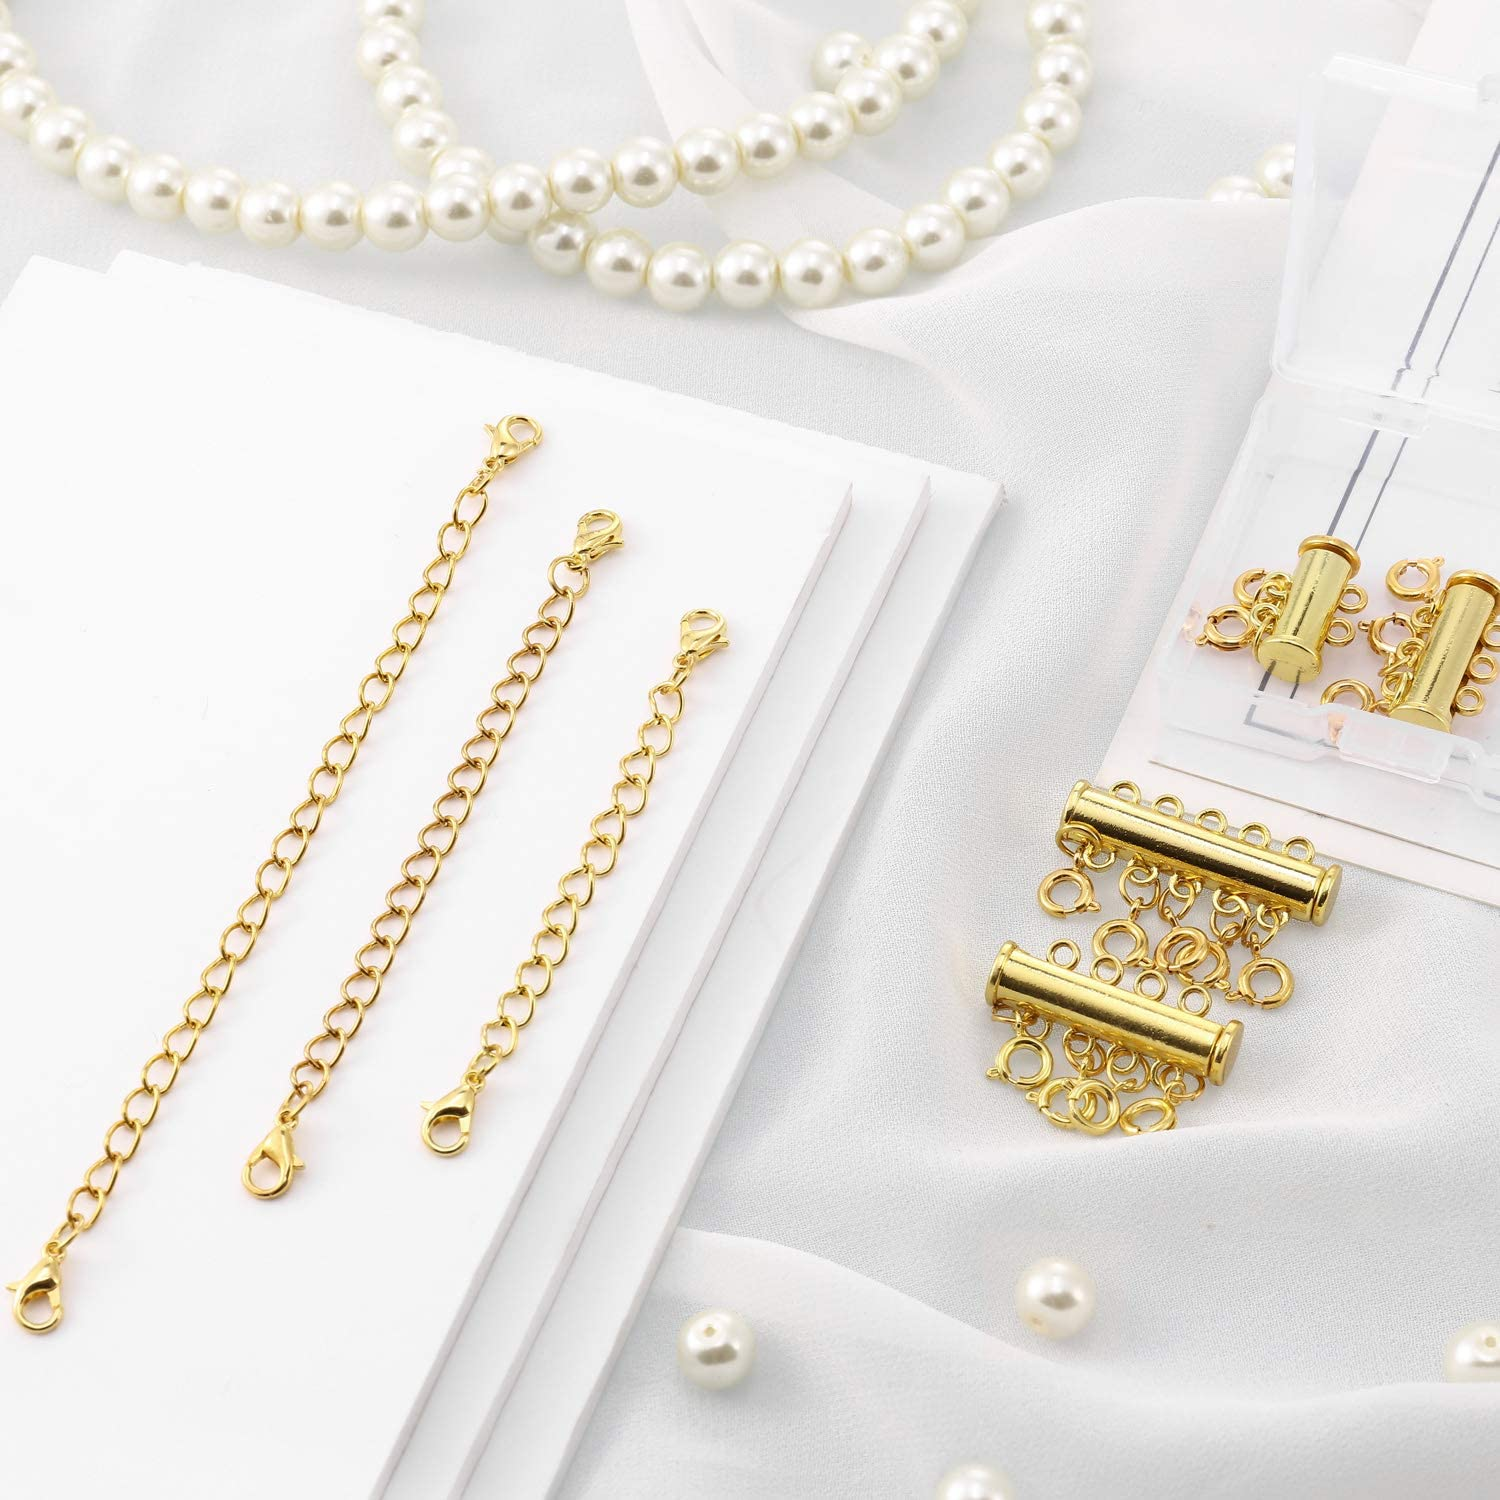 14 Pieces 4 Sizes Slide Magnetic Clasp Connectors Tube Multi Strands Clasps and Necklace Bracelet Chain Extenders with Storage Box Silver